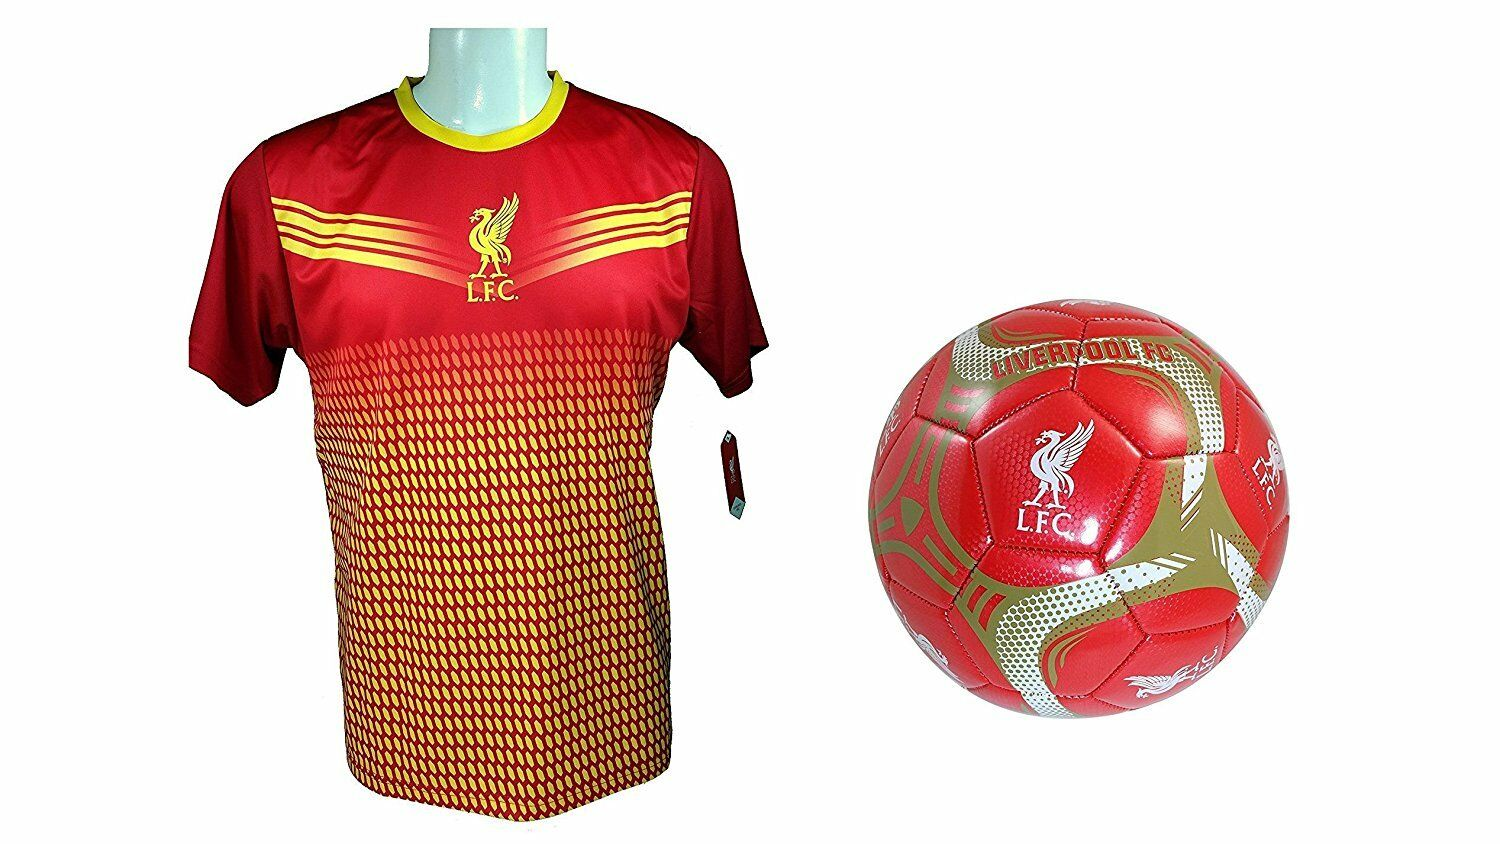 Liverpool F.C. Soccer Official Soccer Training Jersey & Size 5 Ball Combo -33 S